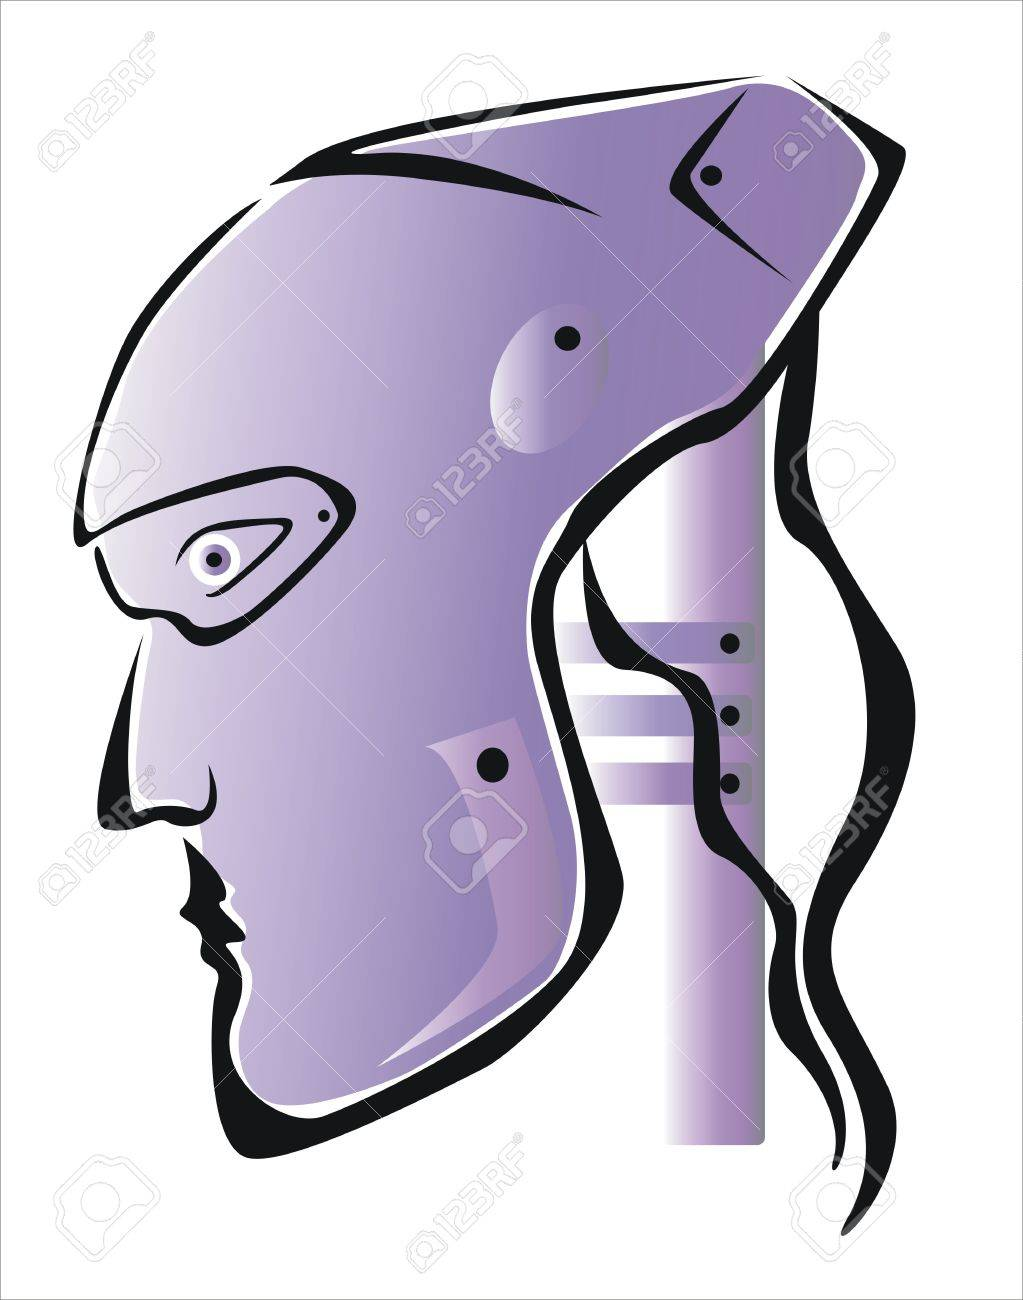 1023x1300 Drawing Of A Robot Head Royalty Free Cliparts, Vectors, And Stock